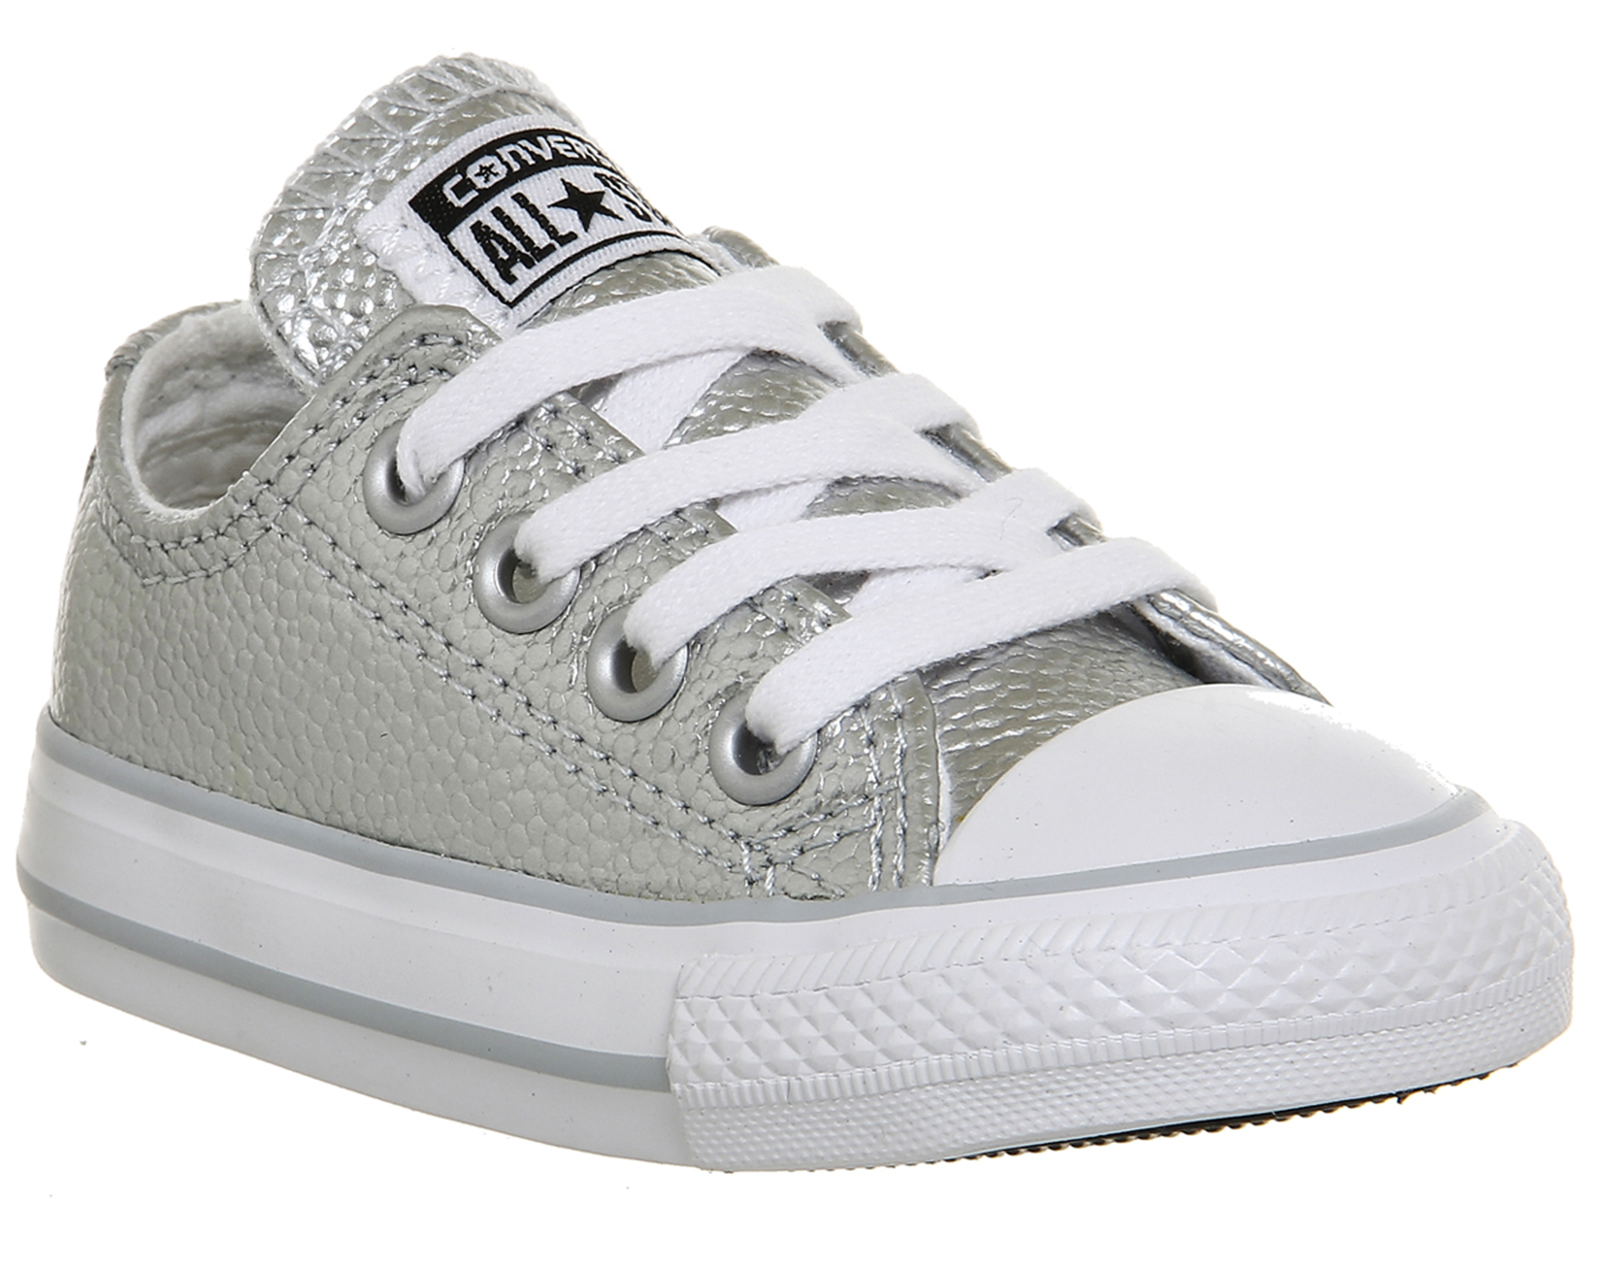 1fef75fec231 Kids Converse All Star Ox Leather Infant PURE SILVER METALLIC Kids ...